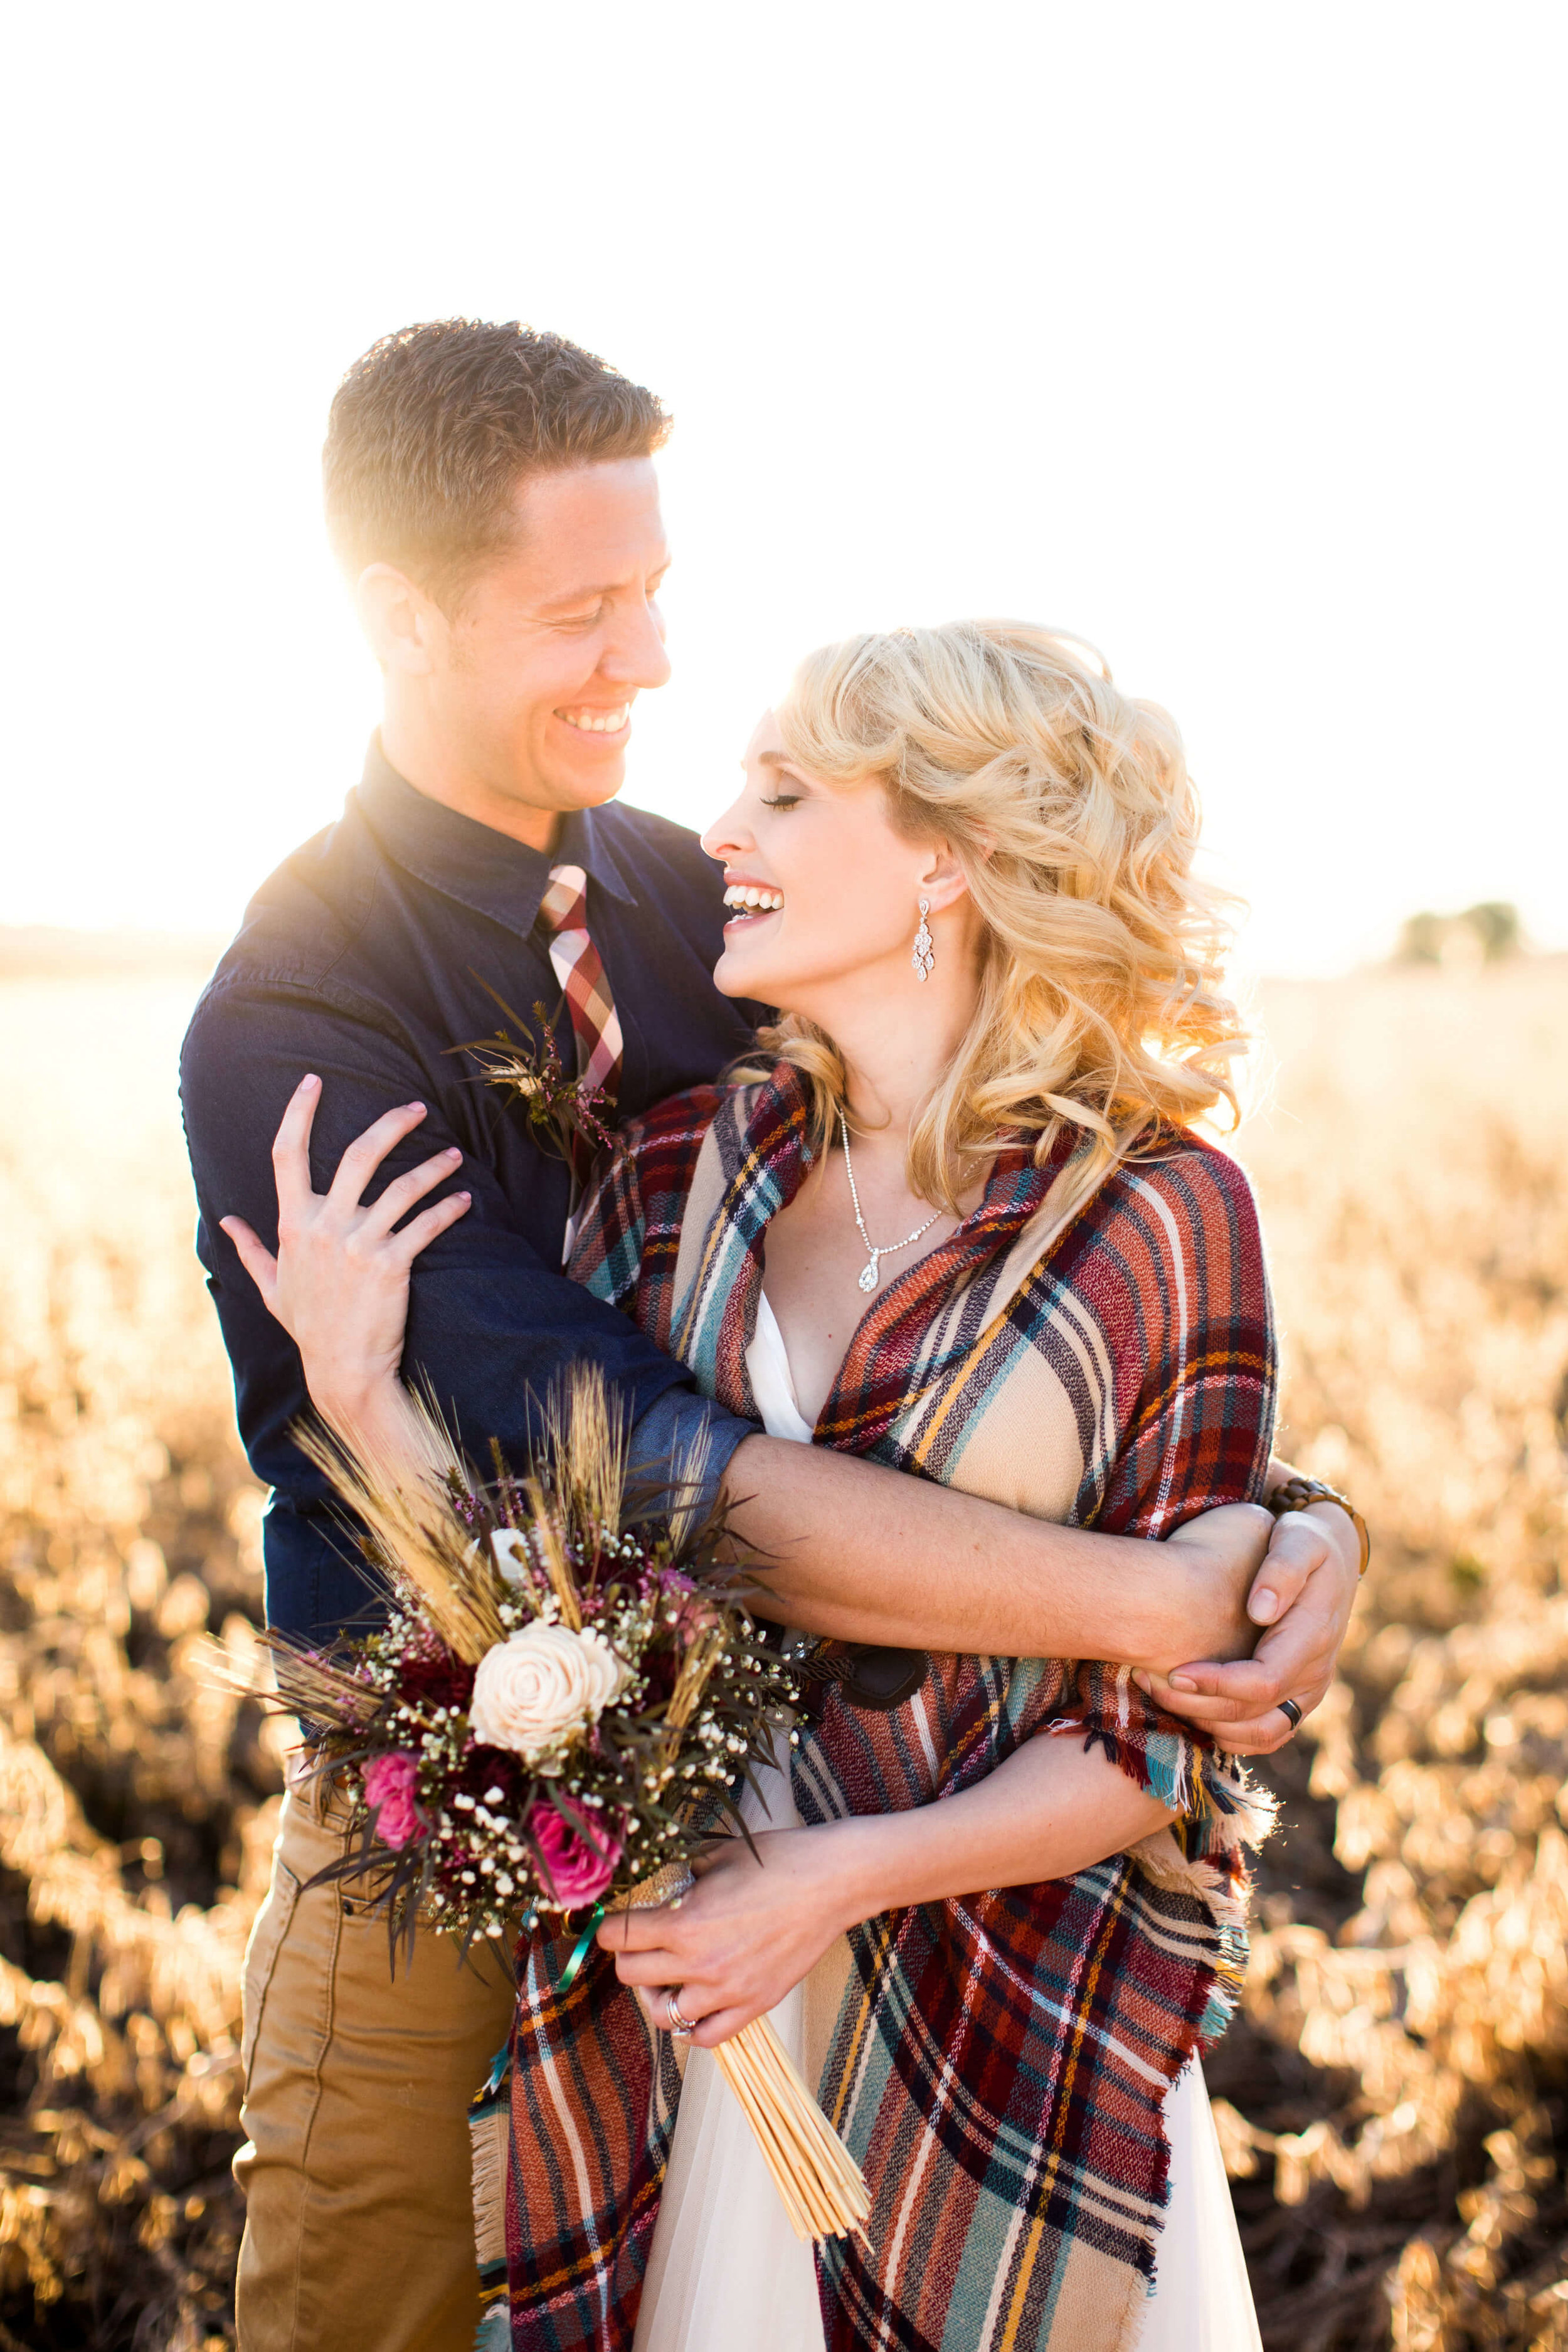 bride wit hharvest plaid shawl and bouquet with wheat | groom in khaki with blue rolled up sleeves and check tie | sunset in the autumn fields | Minnesota wedding photographer Studio KH wedding dress details | wedding blog | Sixpence Events 70 Ways to Photograph Your Wedding Dress.jpg